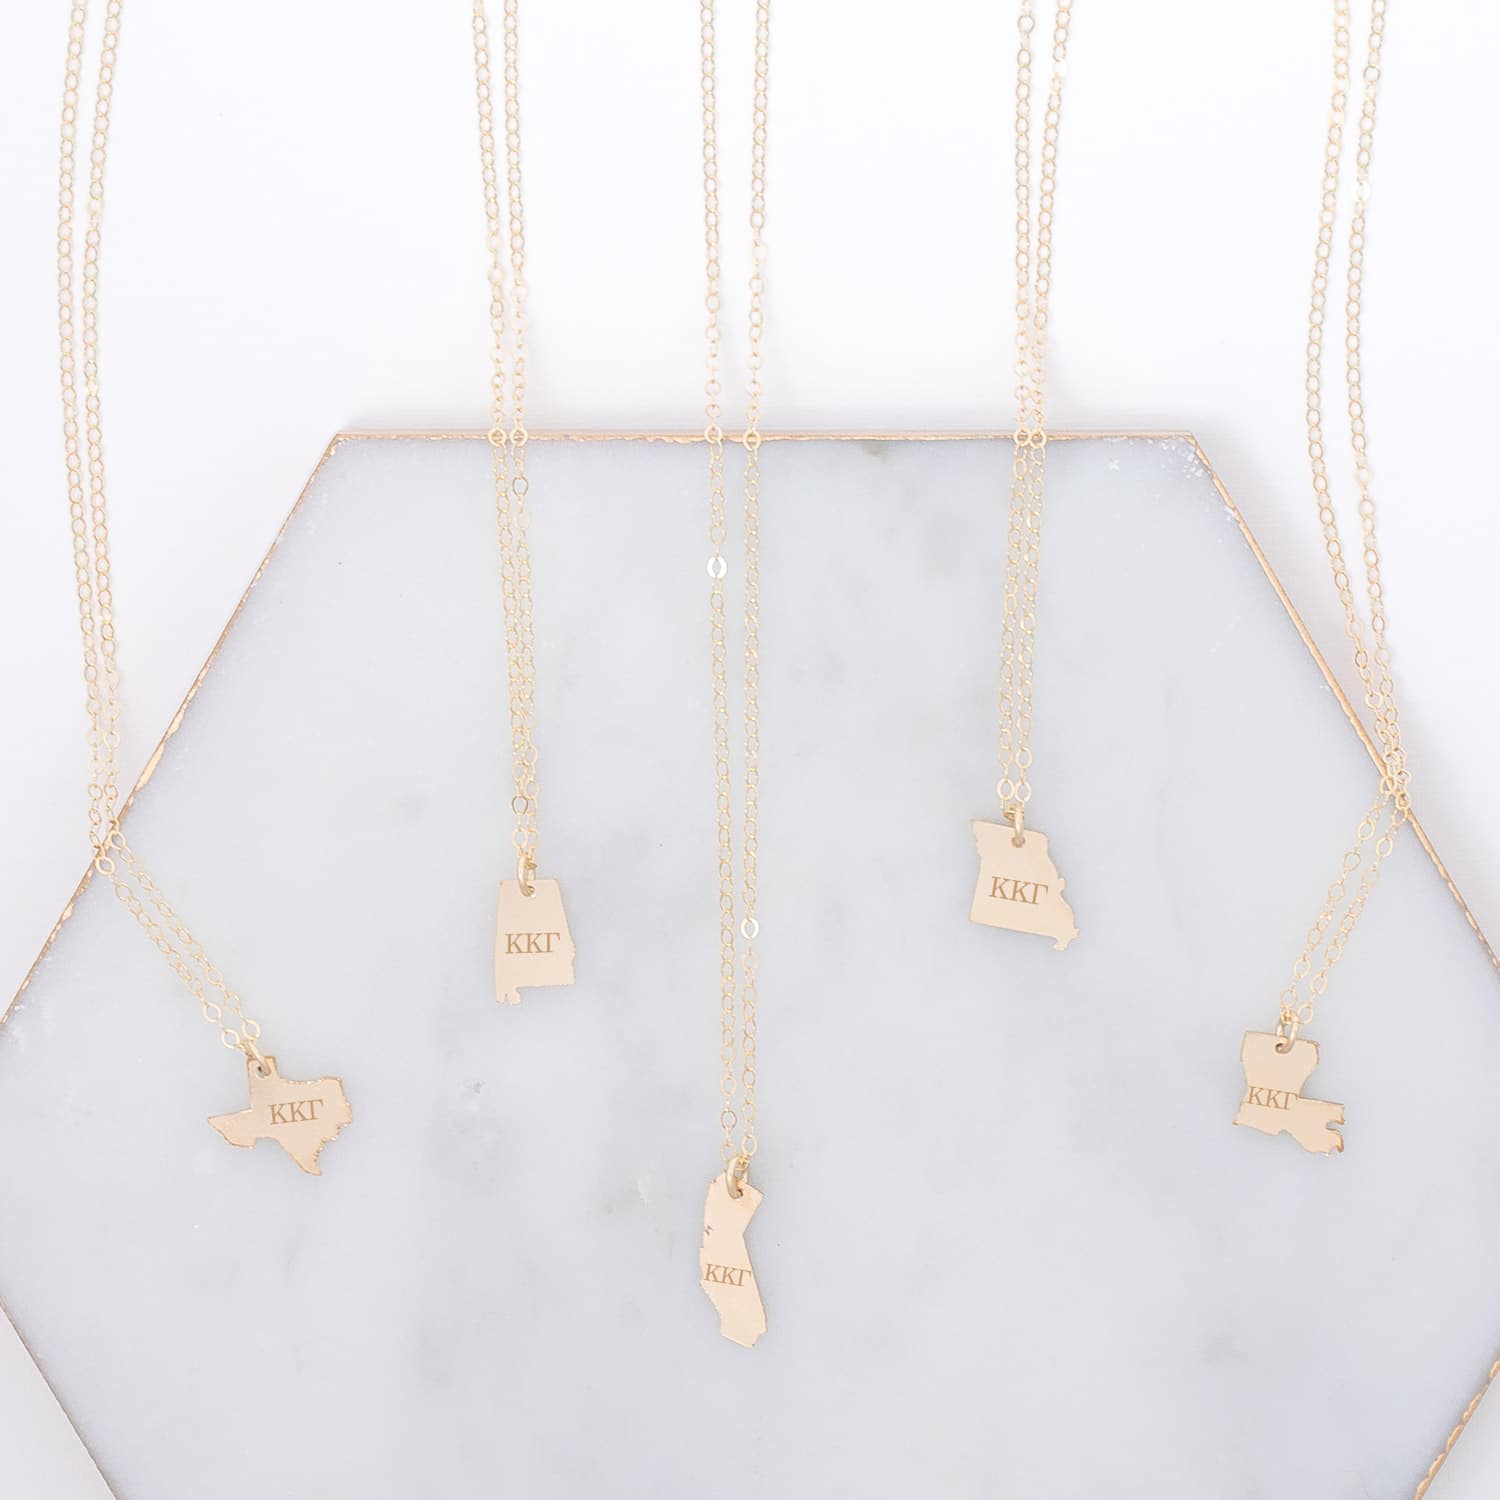 kappa-kappa-gamma-state-necklace-gold-compilation-on-marble